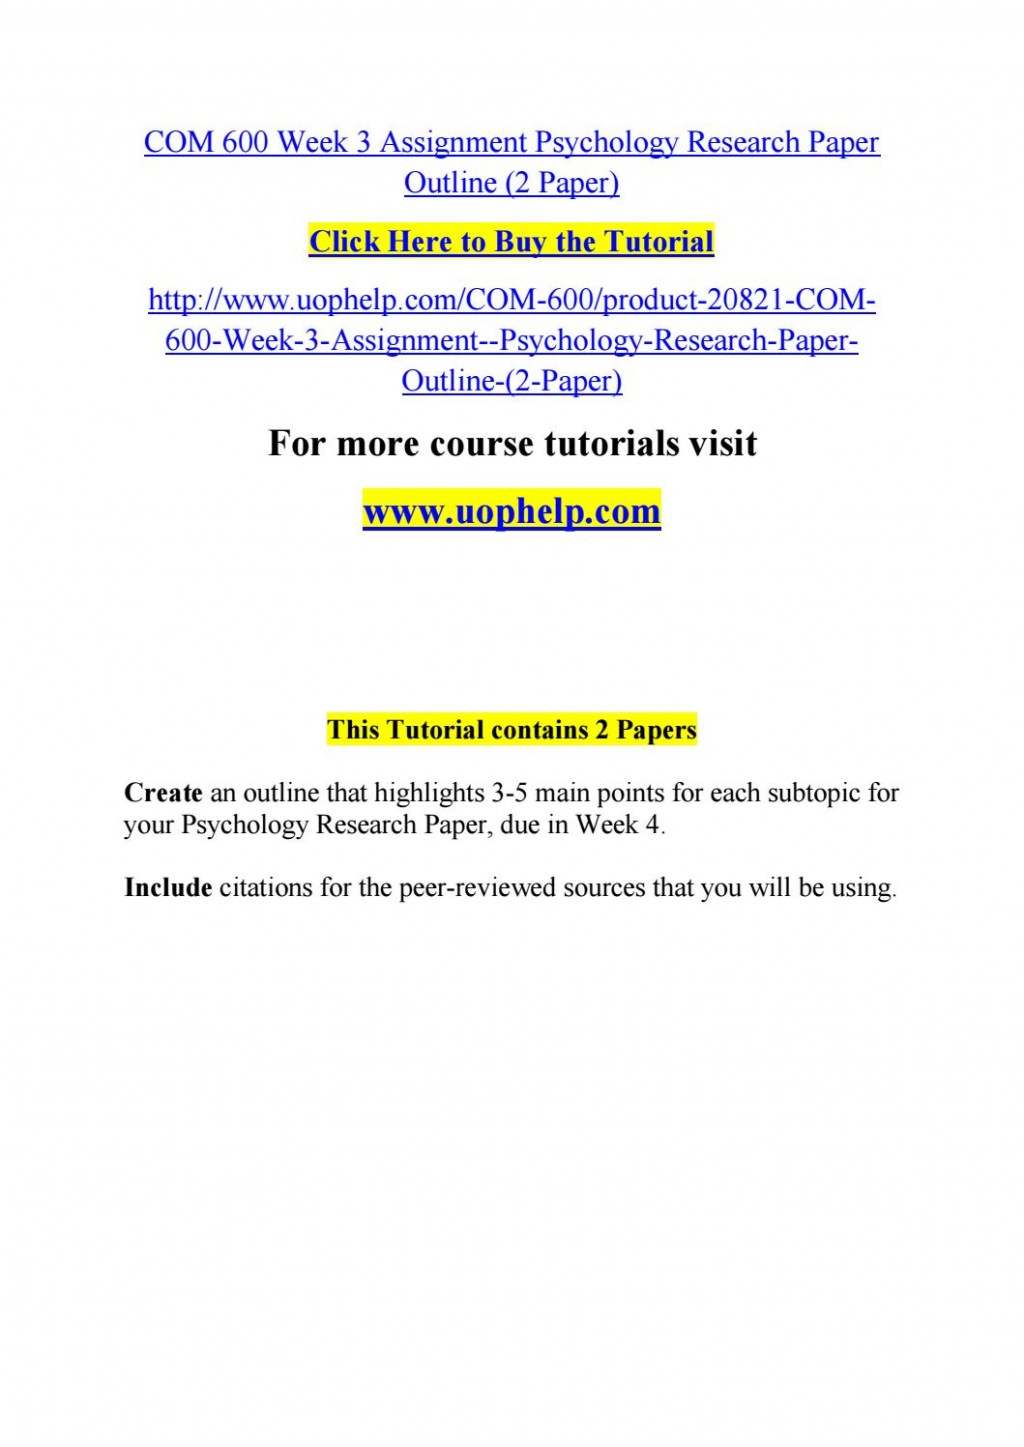 007 Psychology Research Paper Outline Com Page 1 Striking 600 Com/600 Large